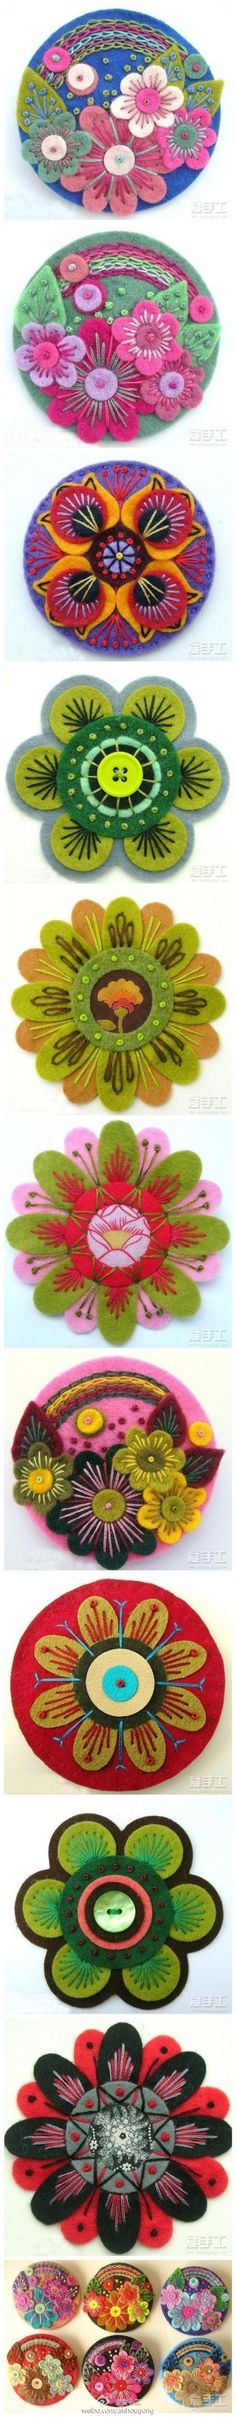 Variety of Flower Patterns on Circle or Flower Shapes